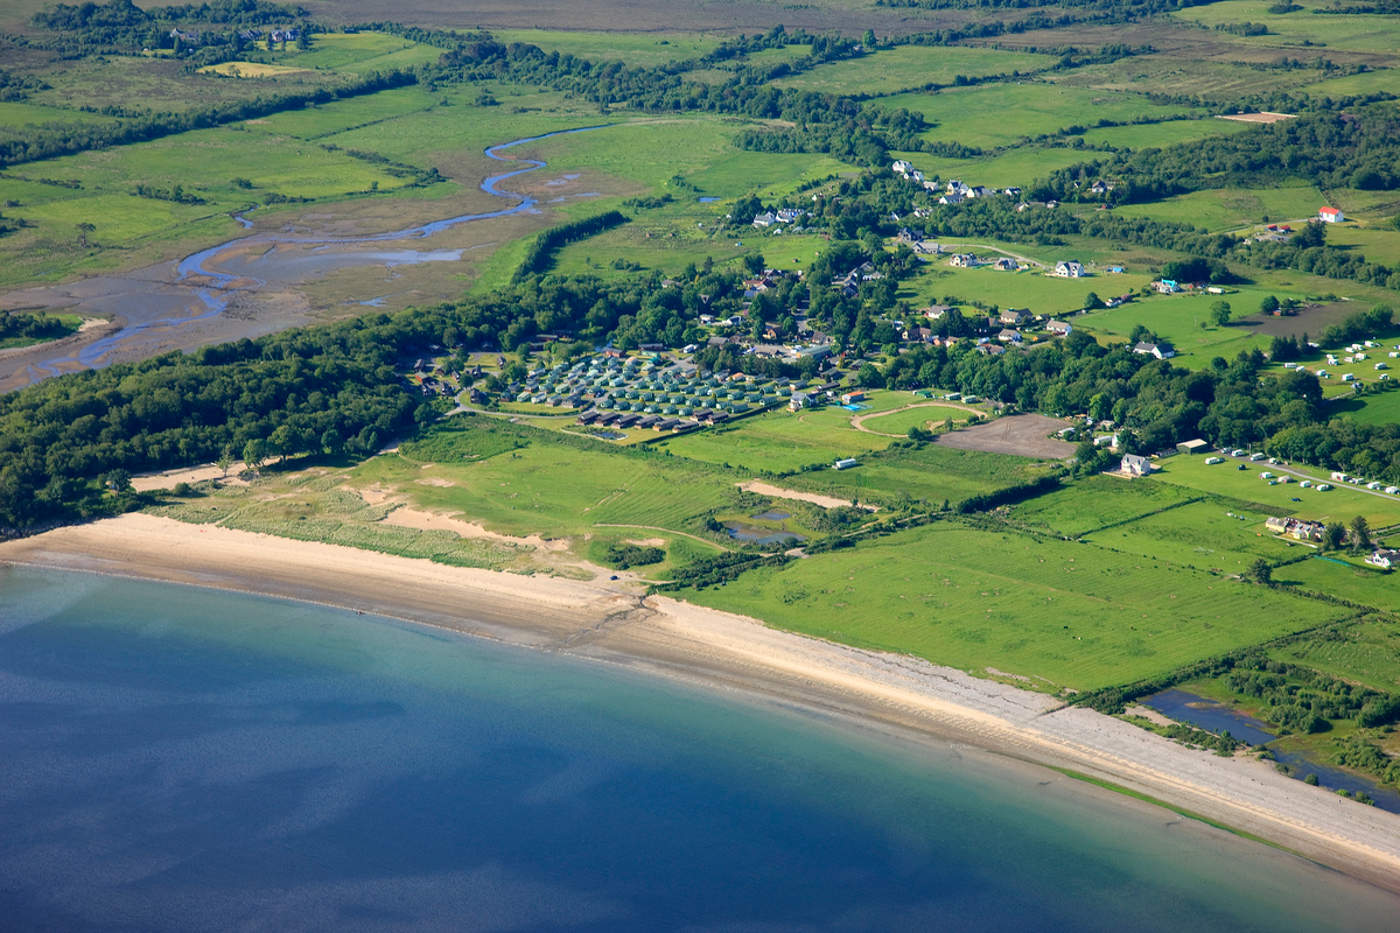 ANOTHER_AERIAL_VIEW_ACROSS_TRALEE_BEACH__SMALL